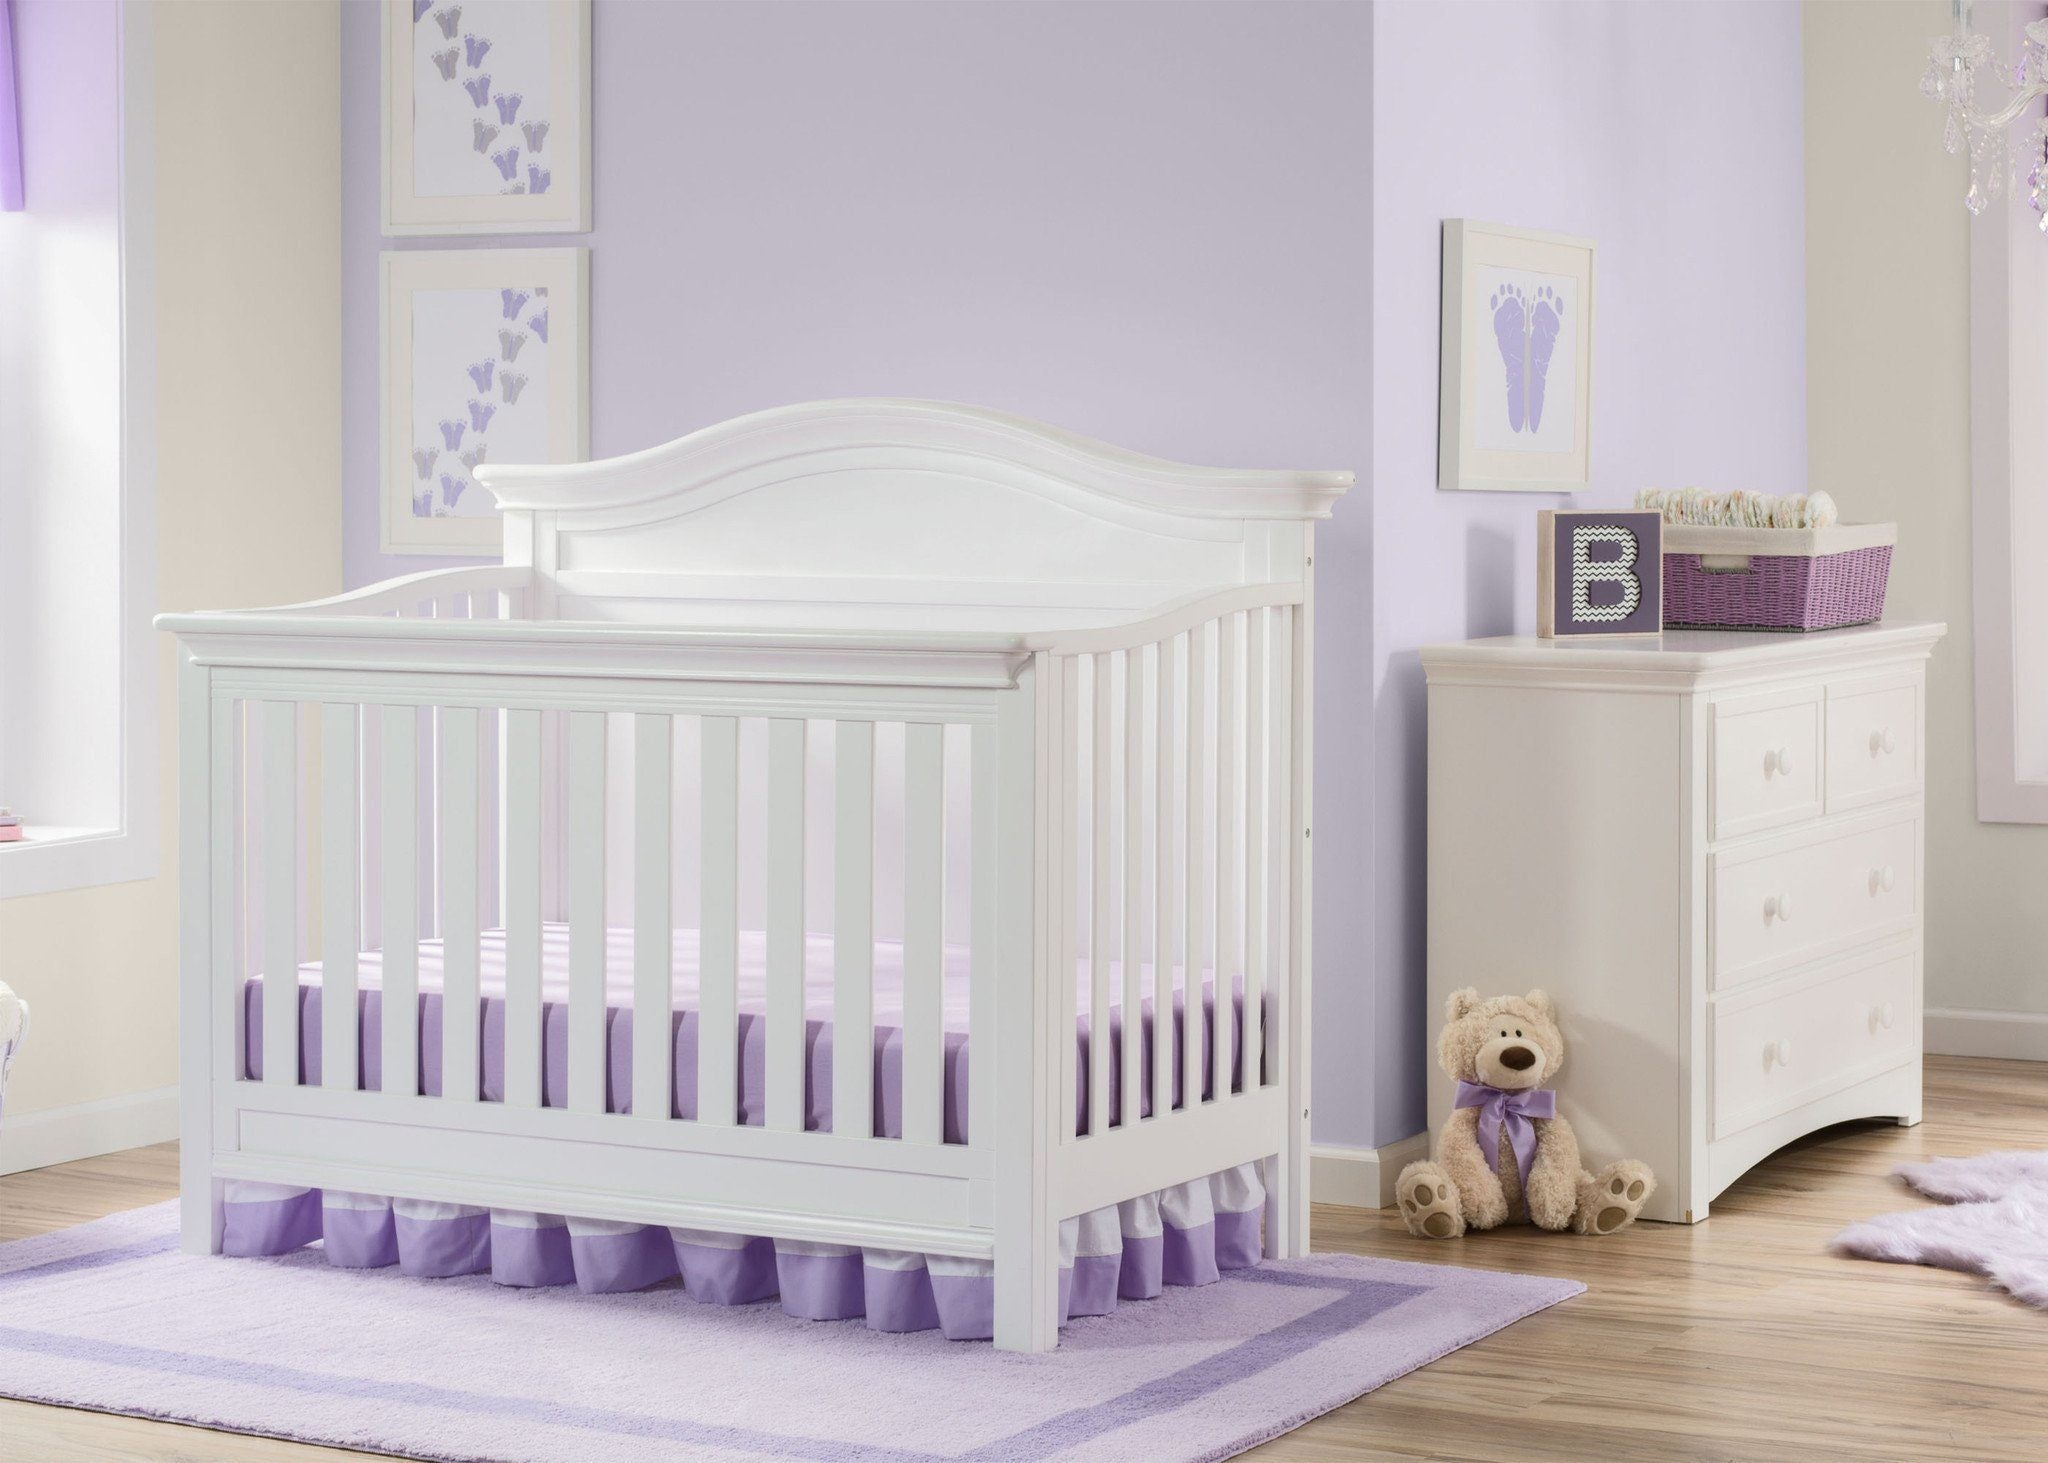 Serta Bianca White (130) Bethpage 4-in-1 Crib, Room View